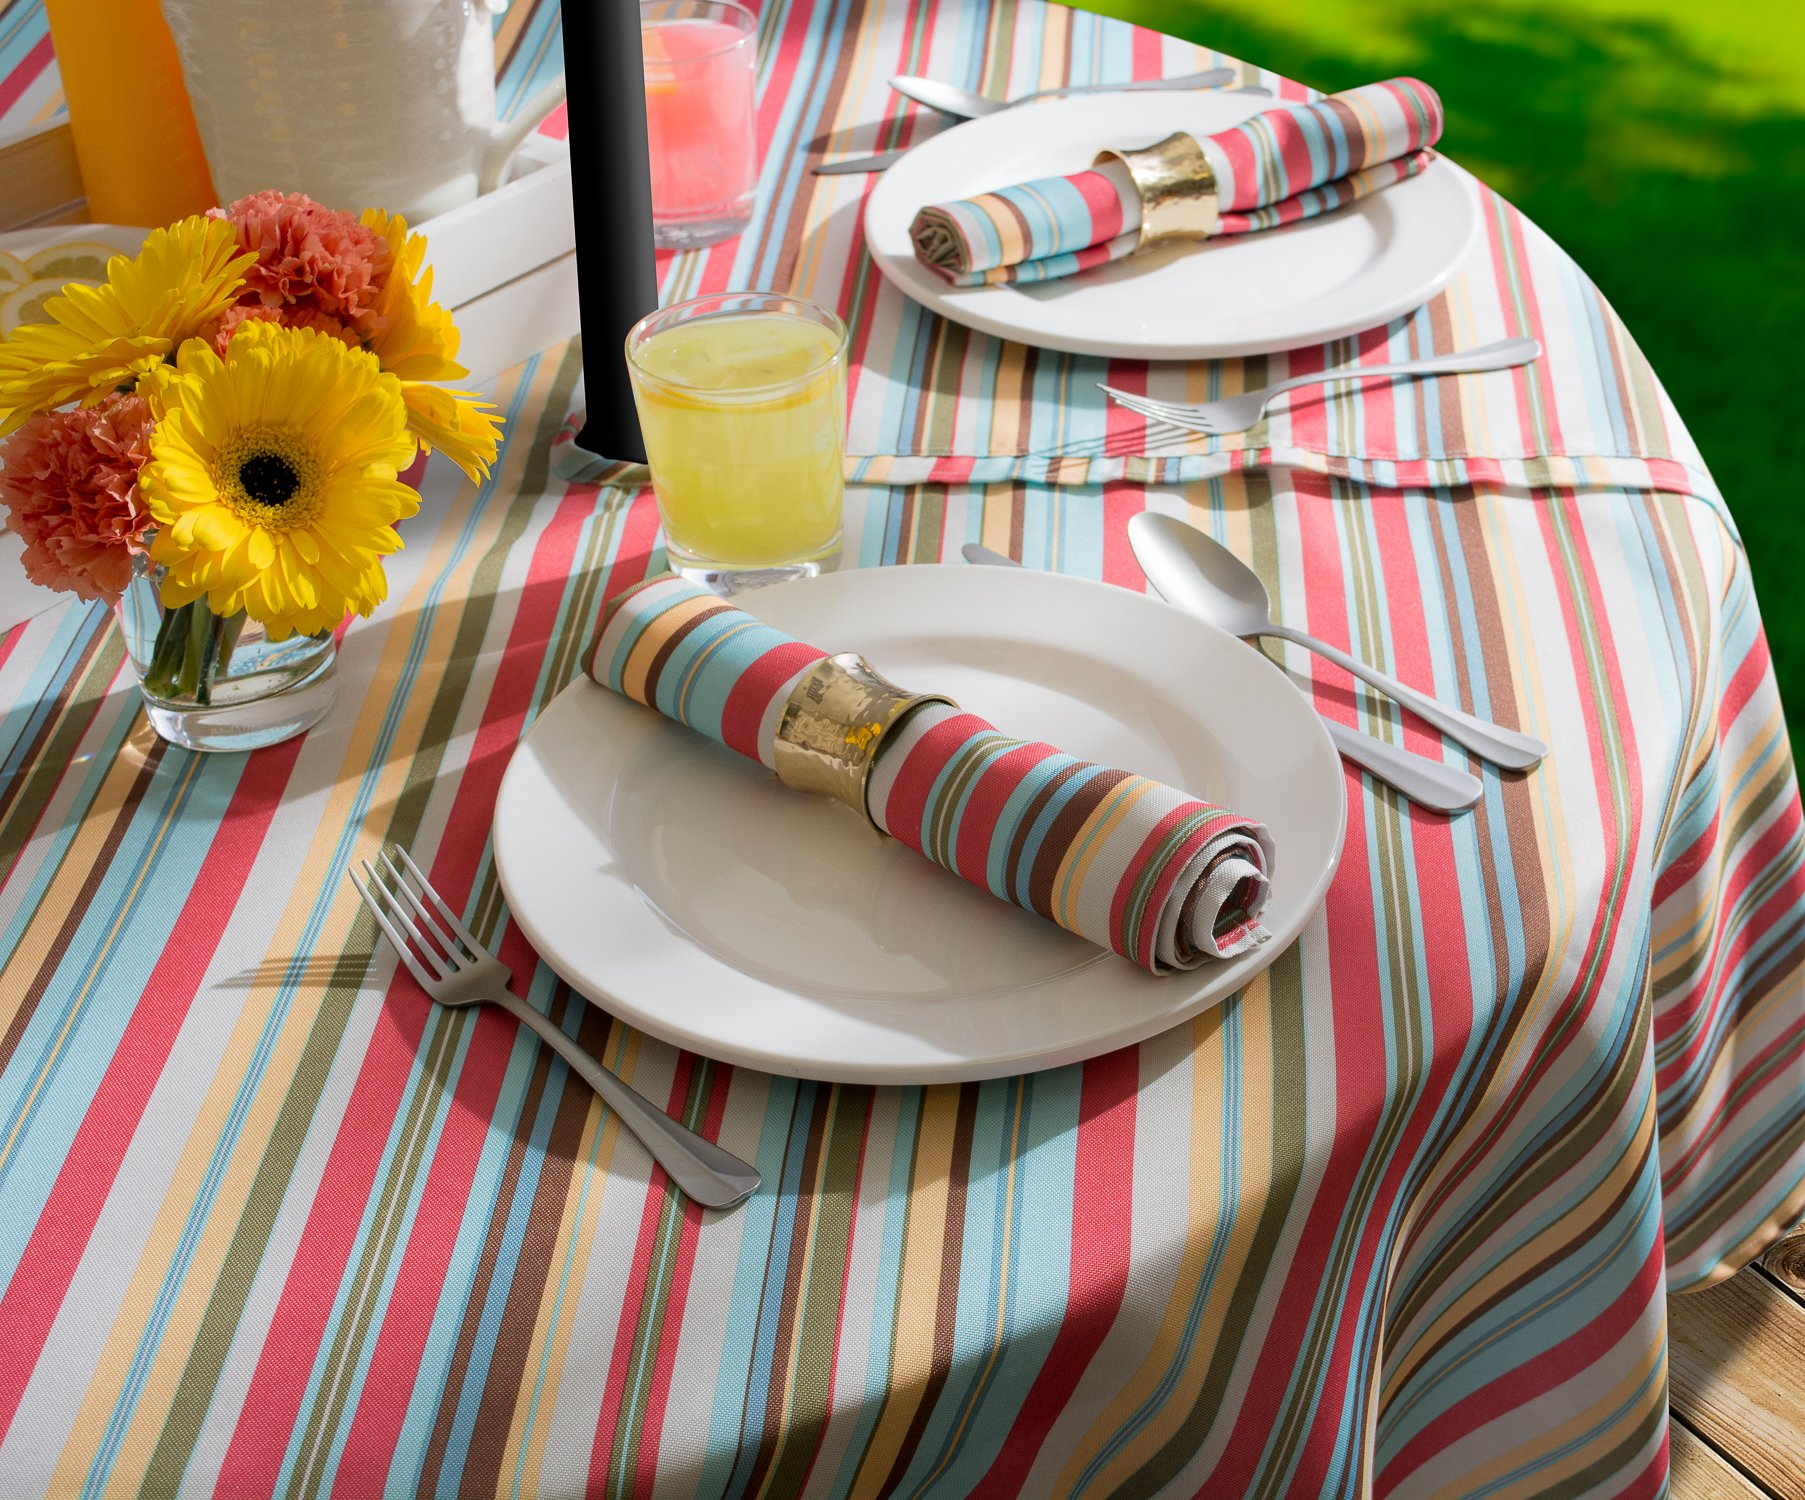 DII Spring & Summer Outdoor Tablecloth, Spill Proof and Waterproof with Zipper and Umbrella Hole, Host Backyard Parties, BBQs, & Family Gatherings - (60x84'' - Seats 6 to 8) Warm Summer Stripe by DII (Image #8)